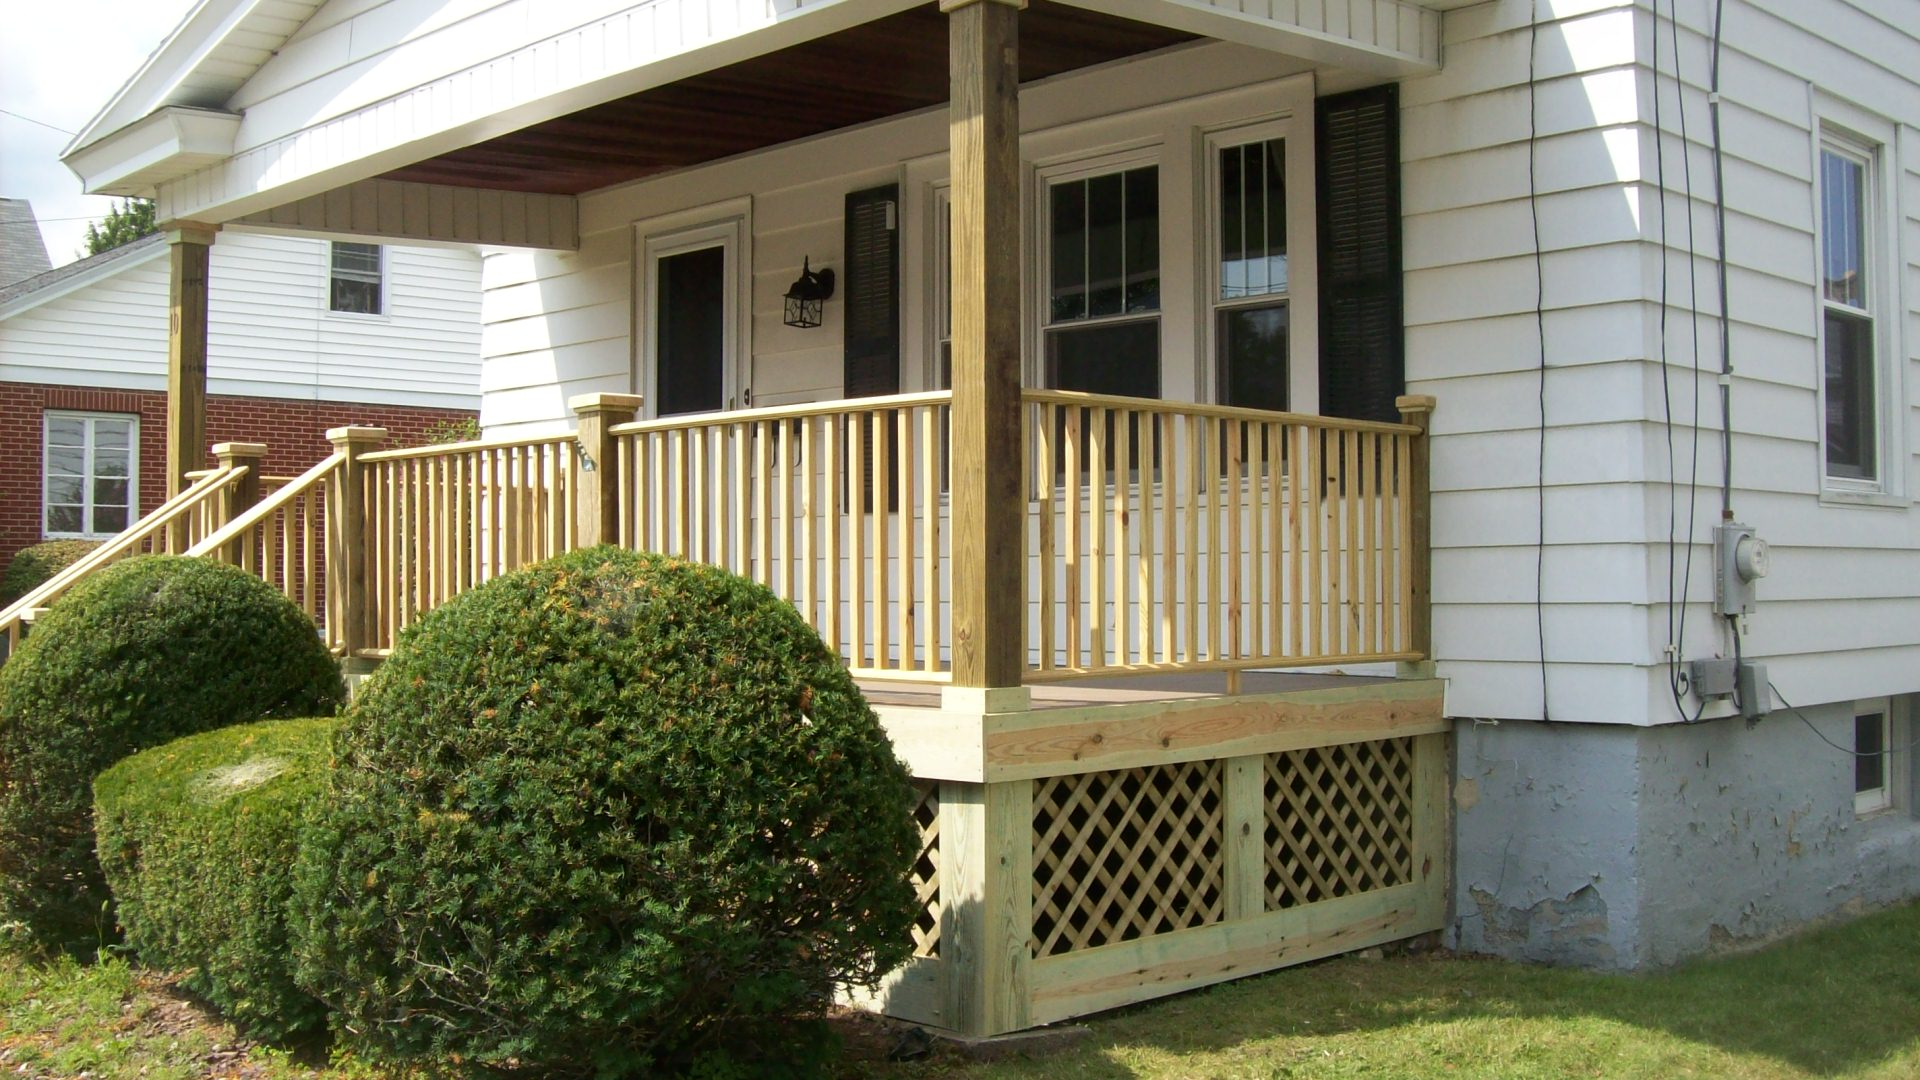 Outdoor Living | Patriot Construction of Upstate New York ... on Patriot Outdoor Living id=47698